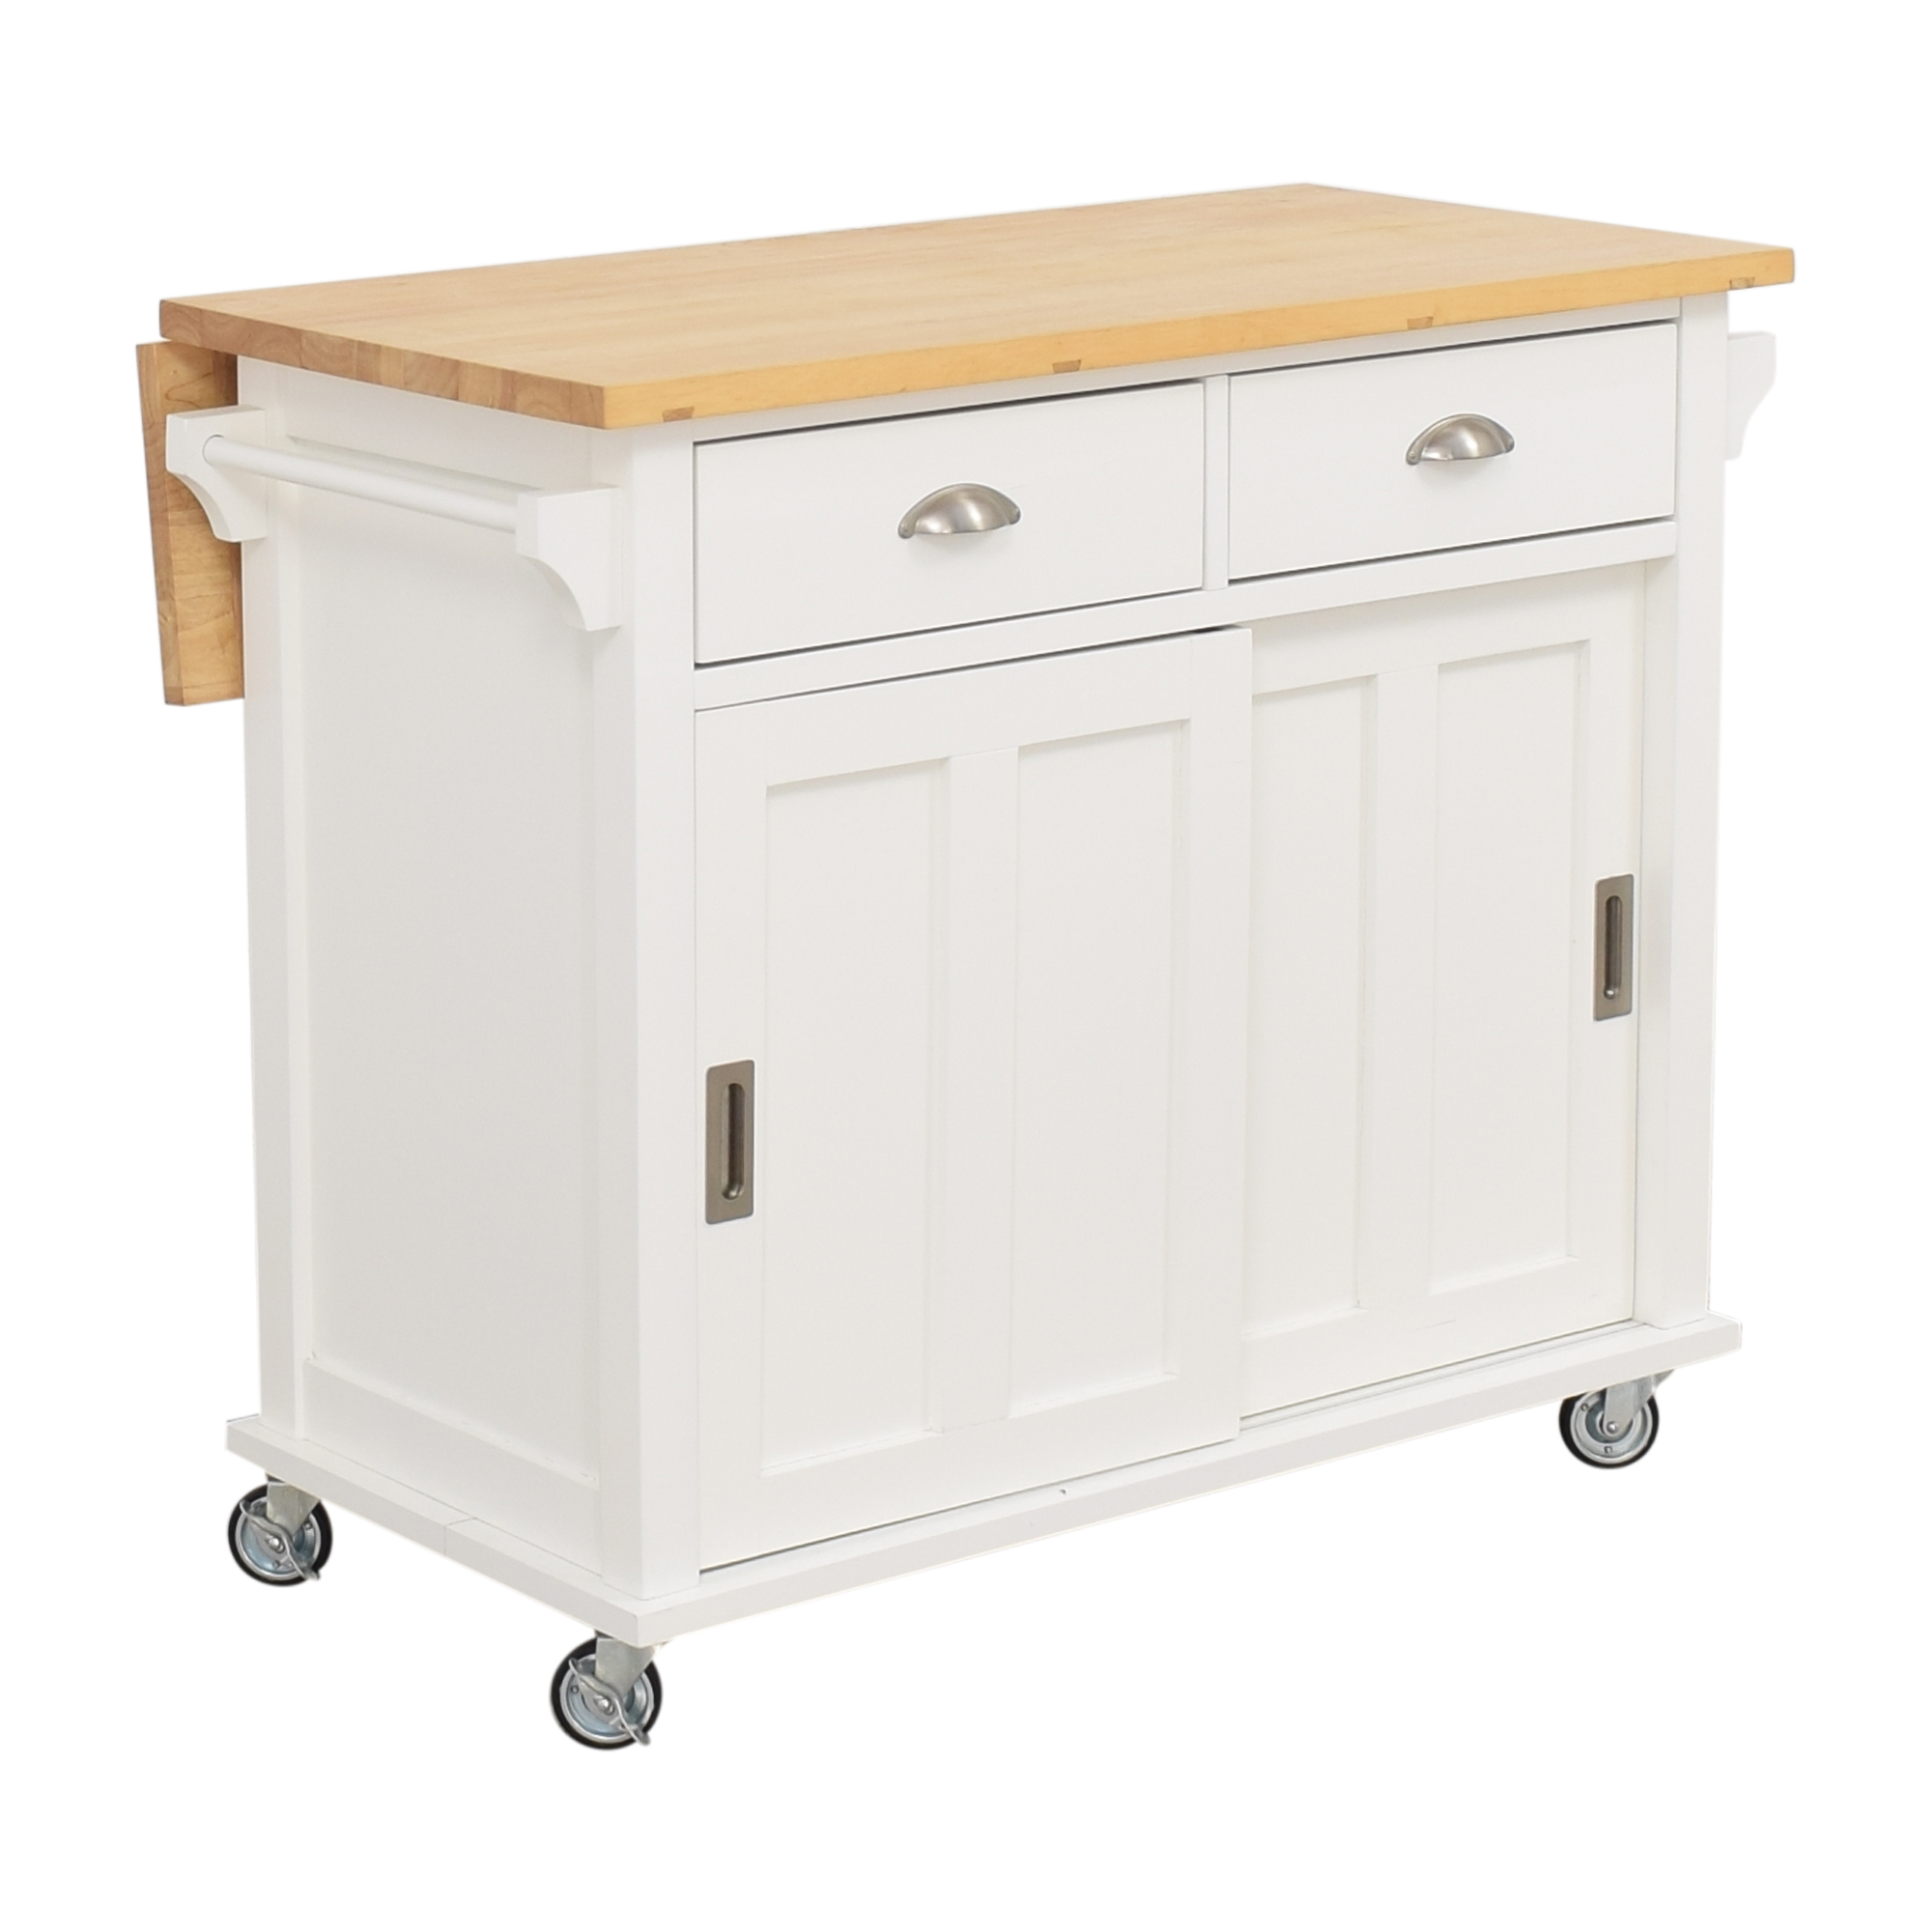 Crate & Barrel Crate & Barrel Belmont White Kitchen Island ct